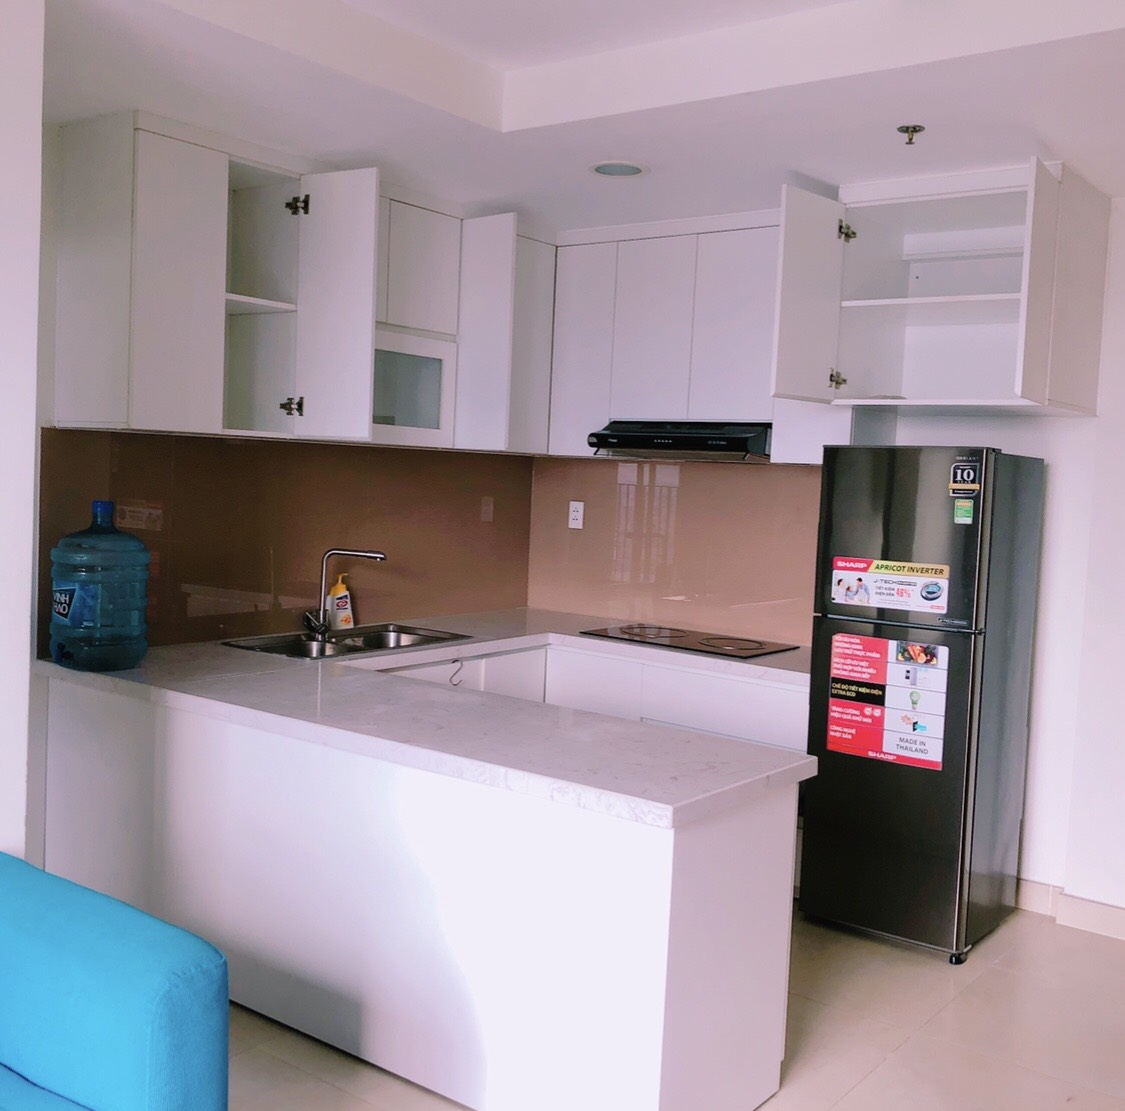 Apartment for rent D2142212 (10)